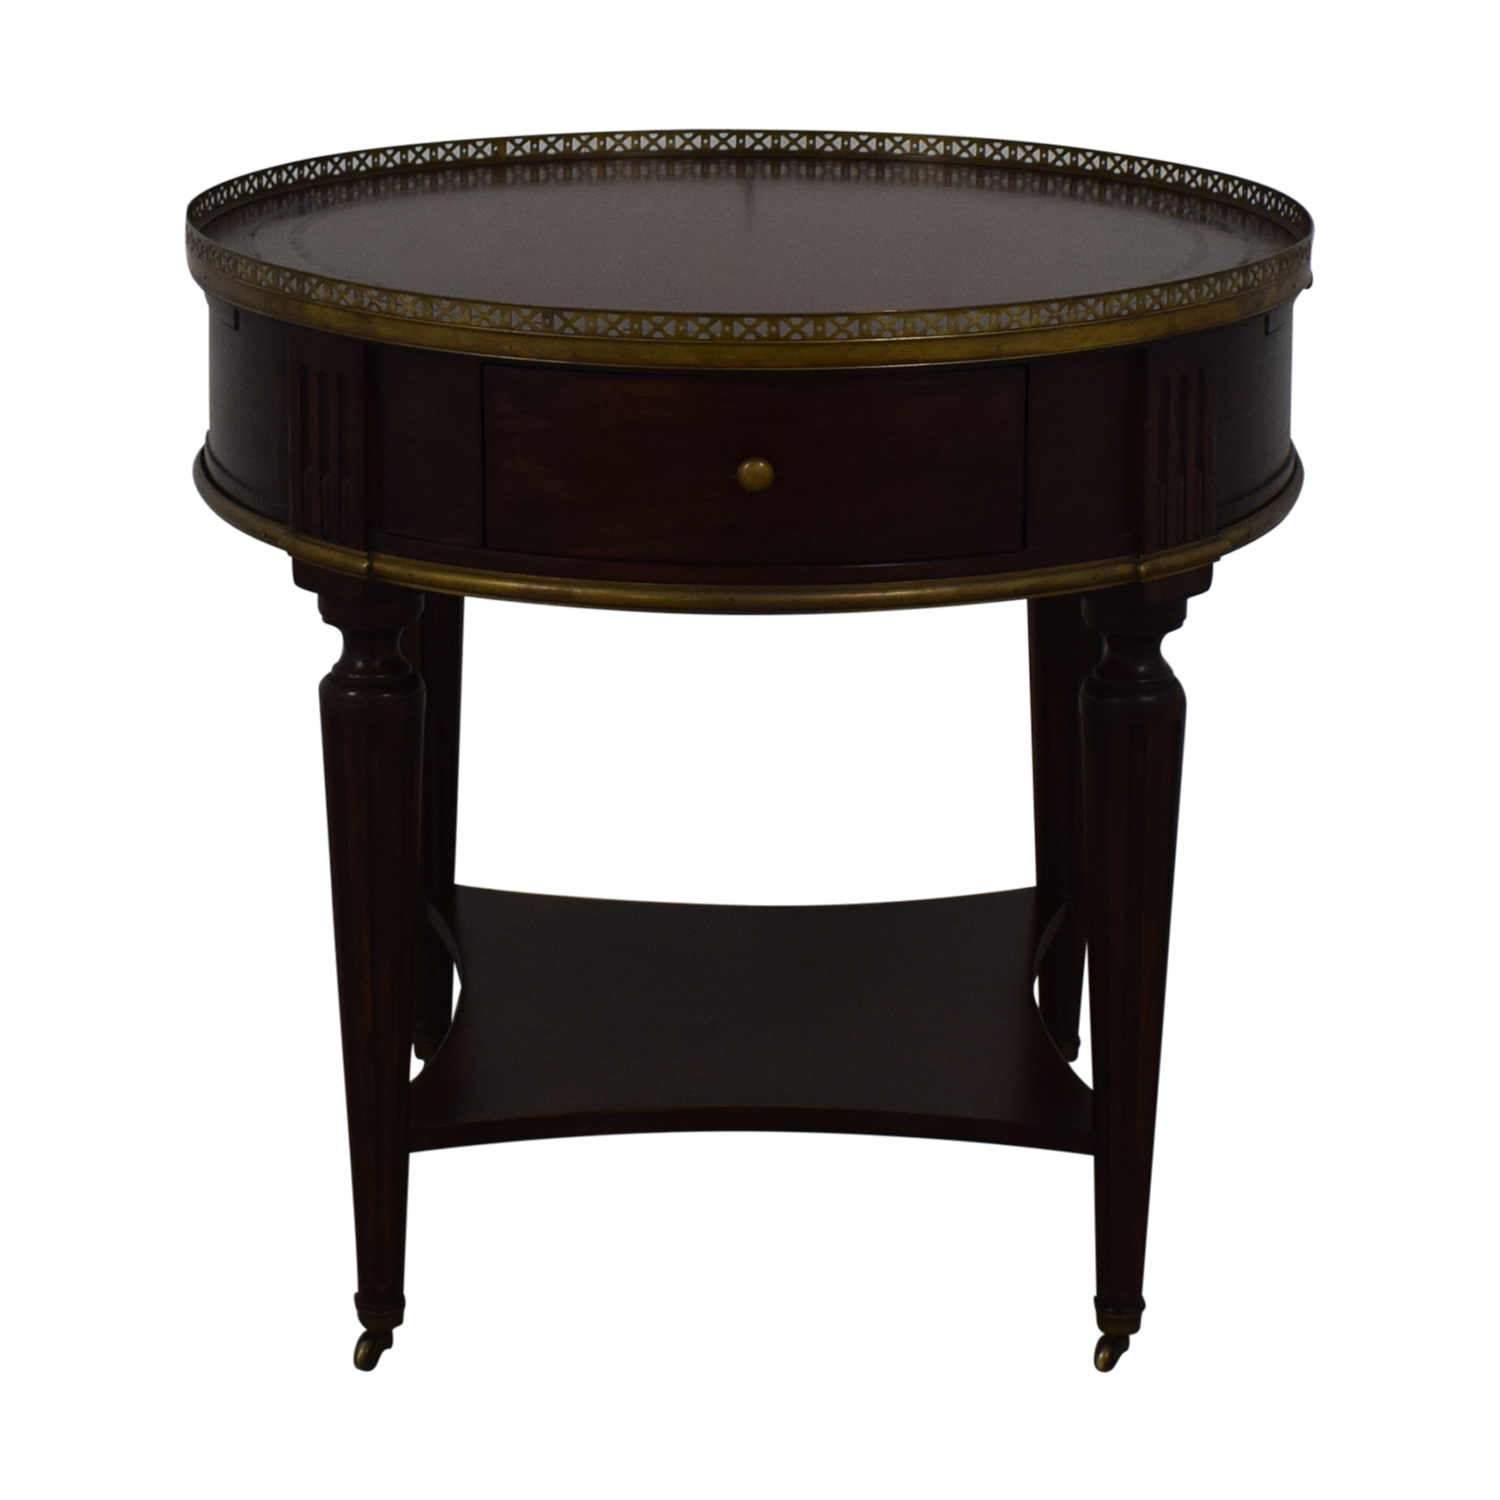 John Richard European Crossroads Bouillotte Table John Richard